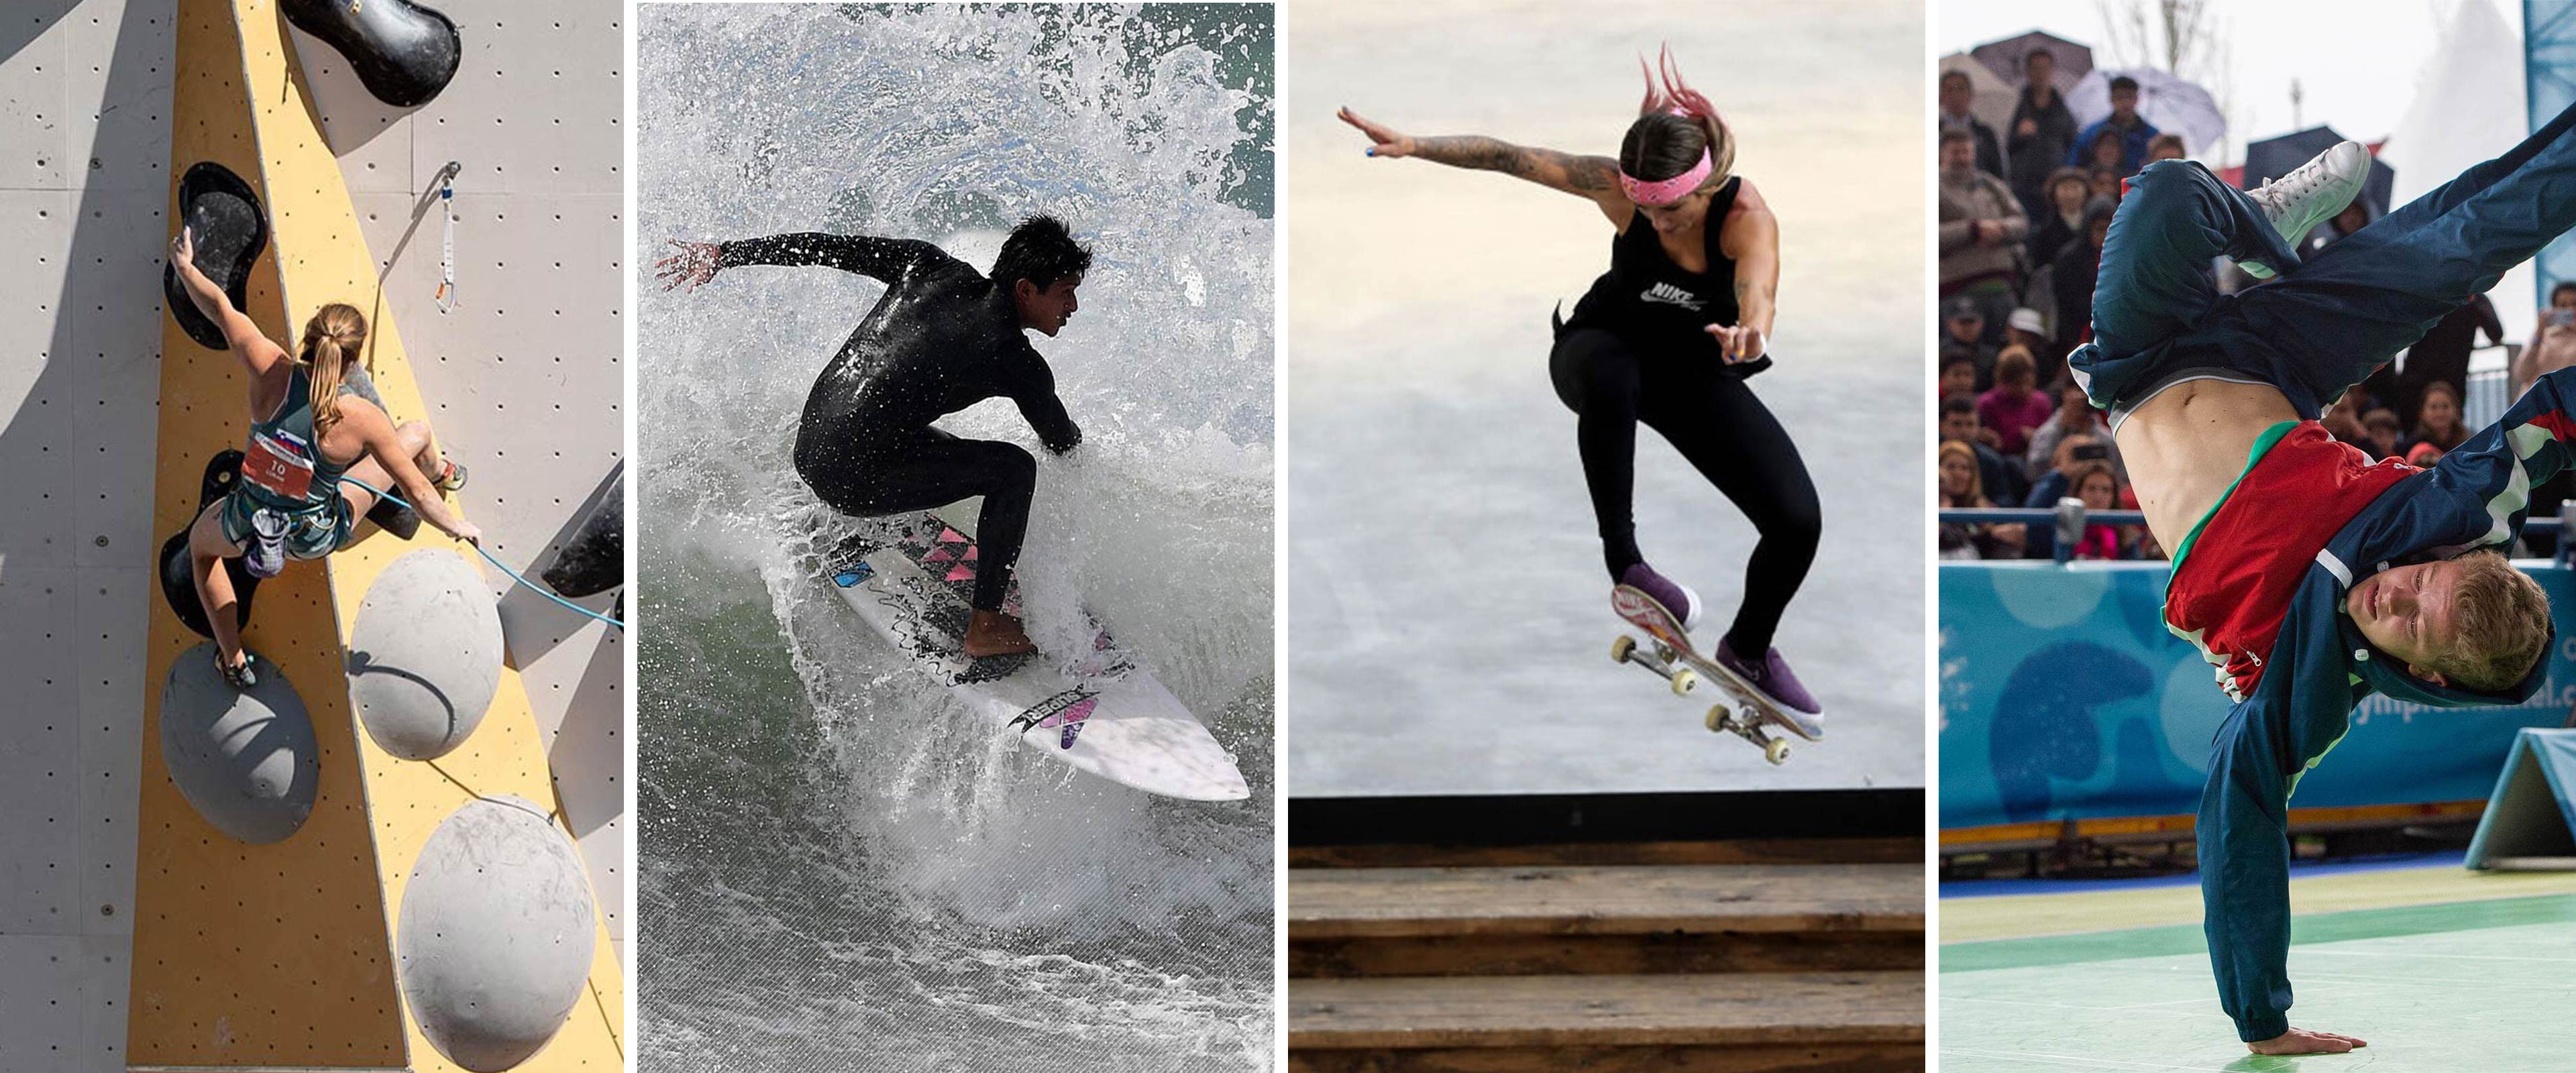 Breaking, Skateboarding, Sport Climbing And Surfing Provisionally Included On The Sports Programme Of The Olympic Games Paris 2024